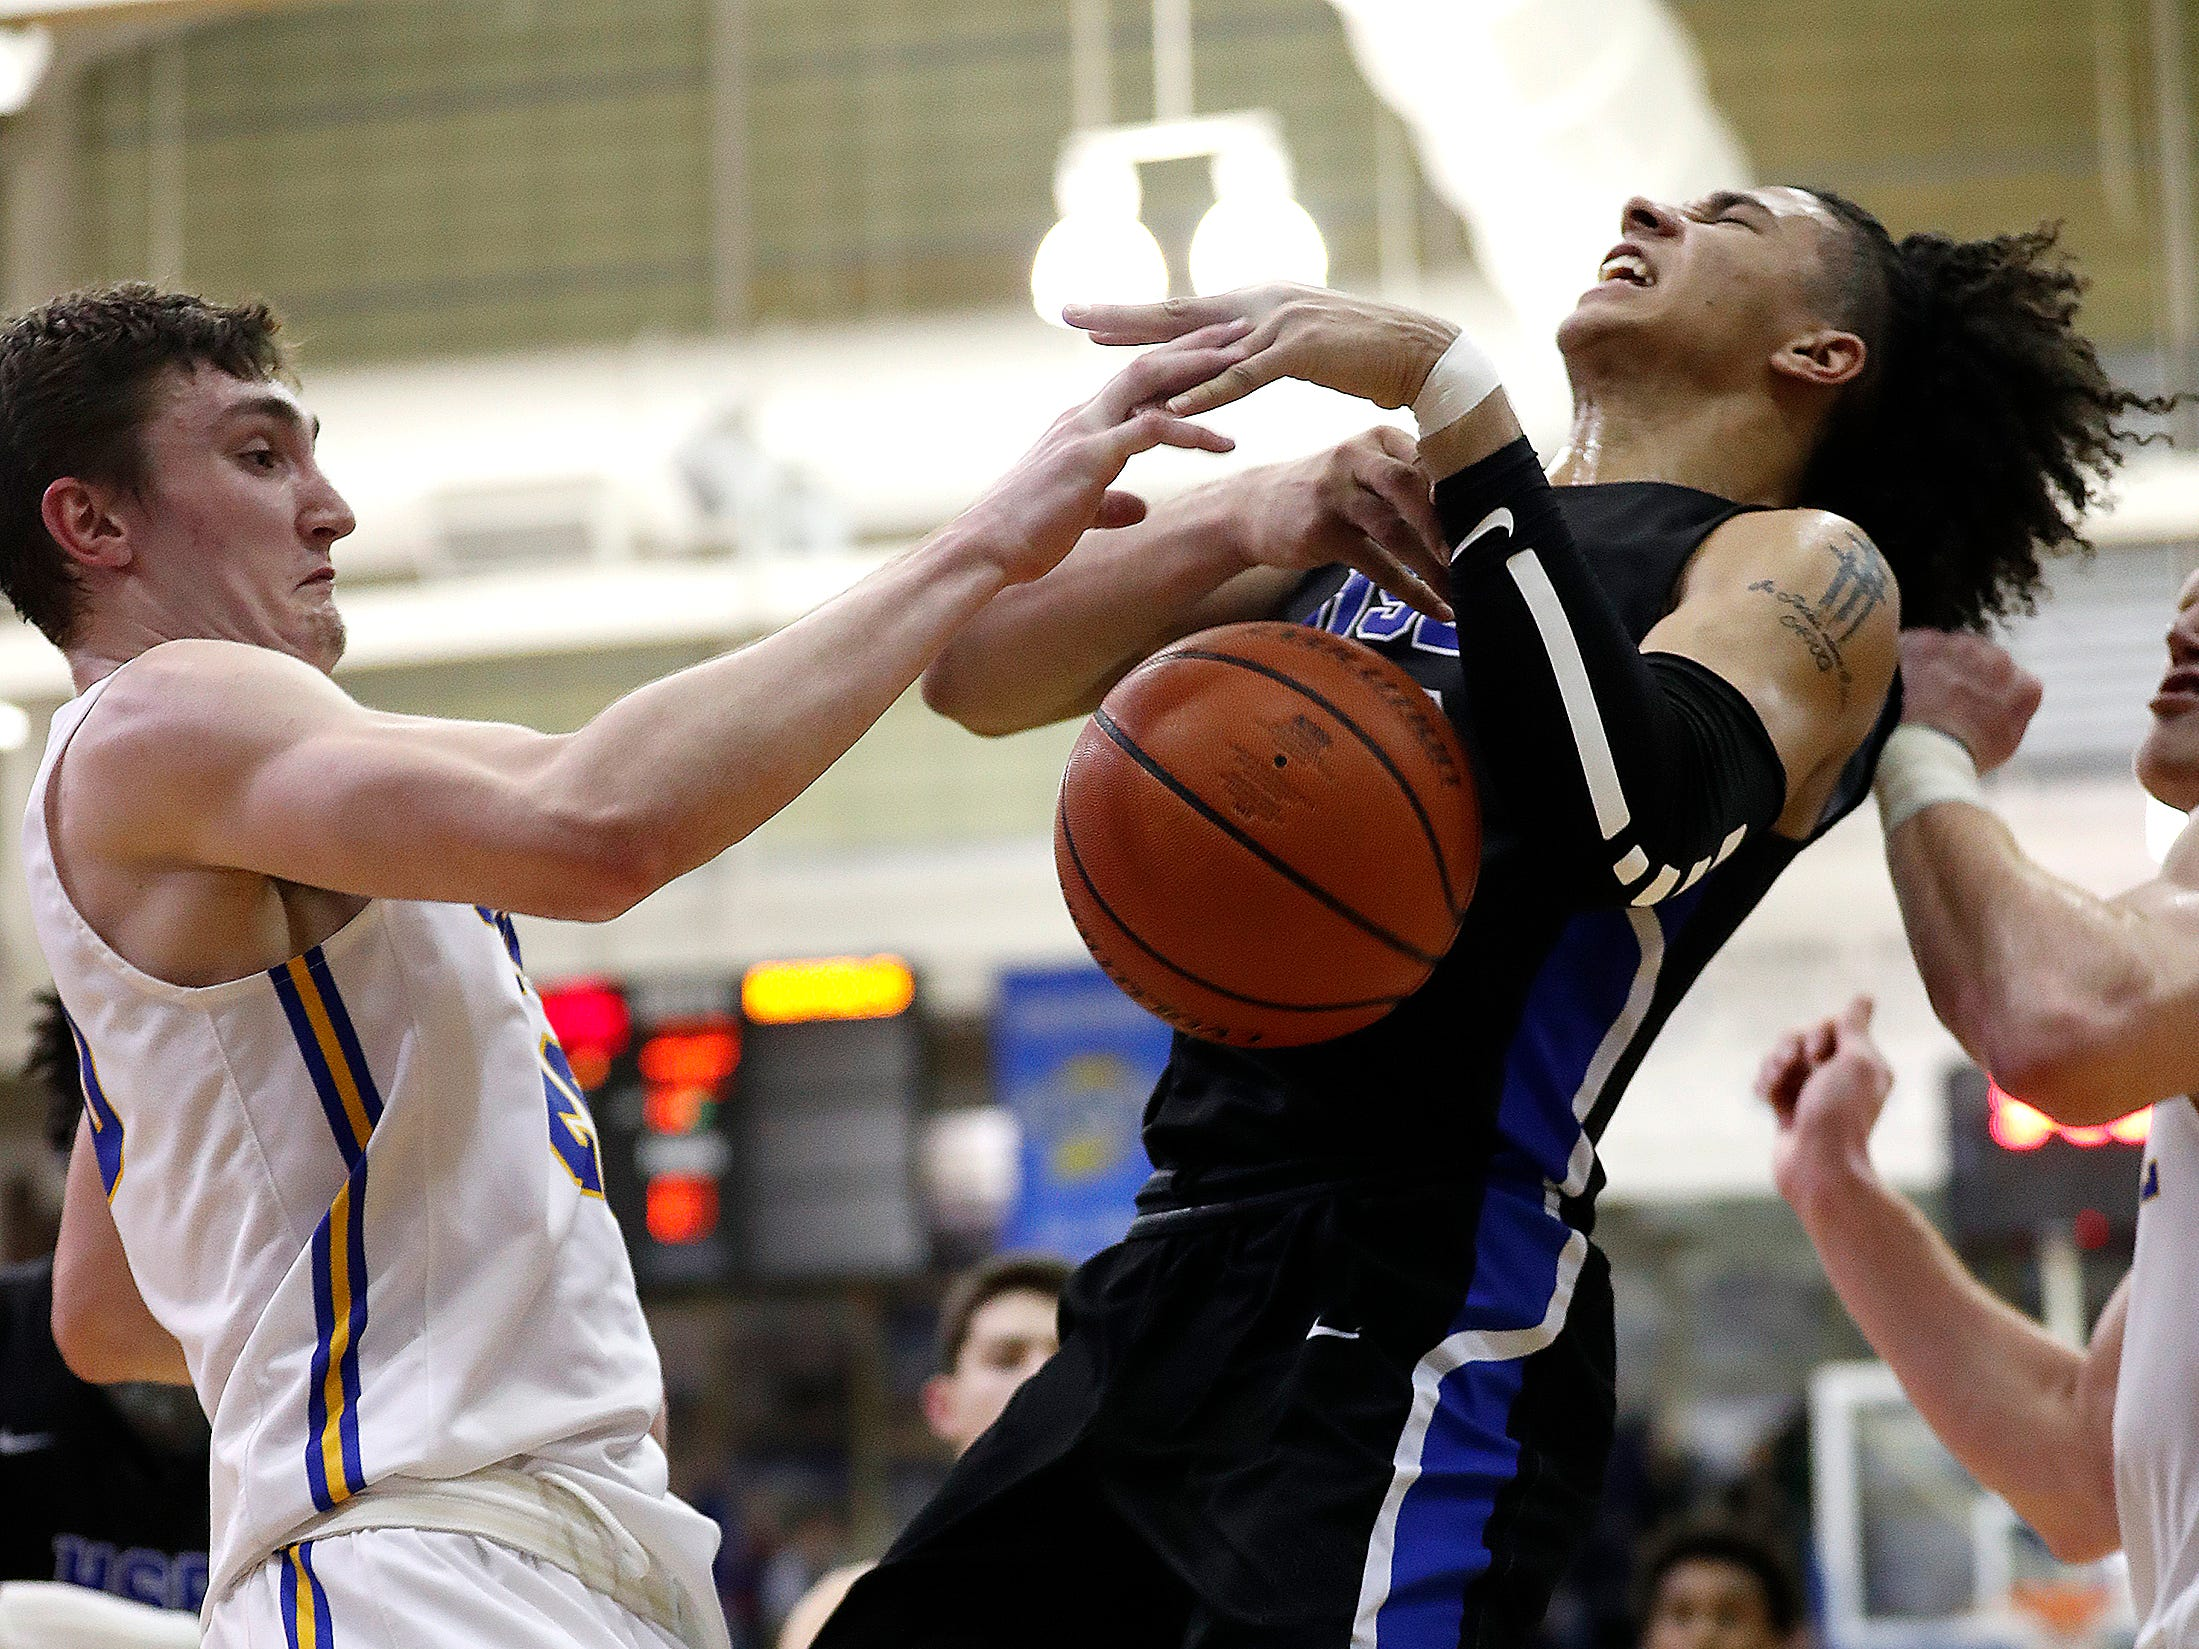 Hamilton Southeastern Royals Chris Grubbs (20) is fouled by Carmel Greyhounds Andrew Owens (20) in the second half of their game at Carmel High School on Friday, Feb. 8, 2019.